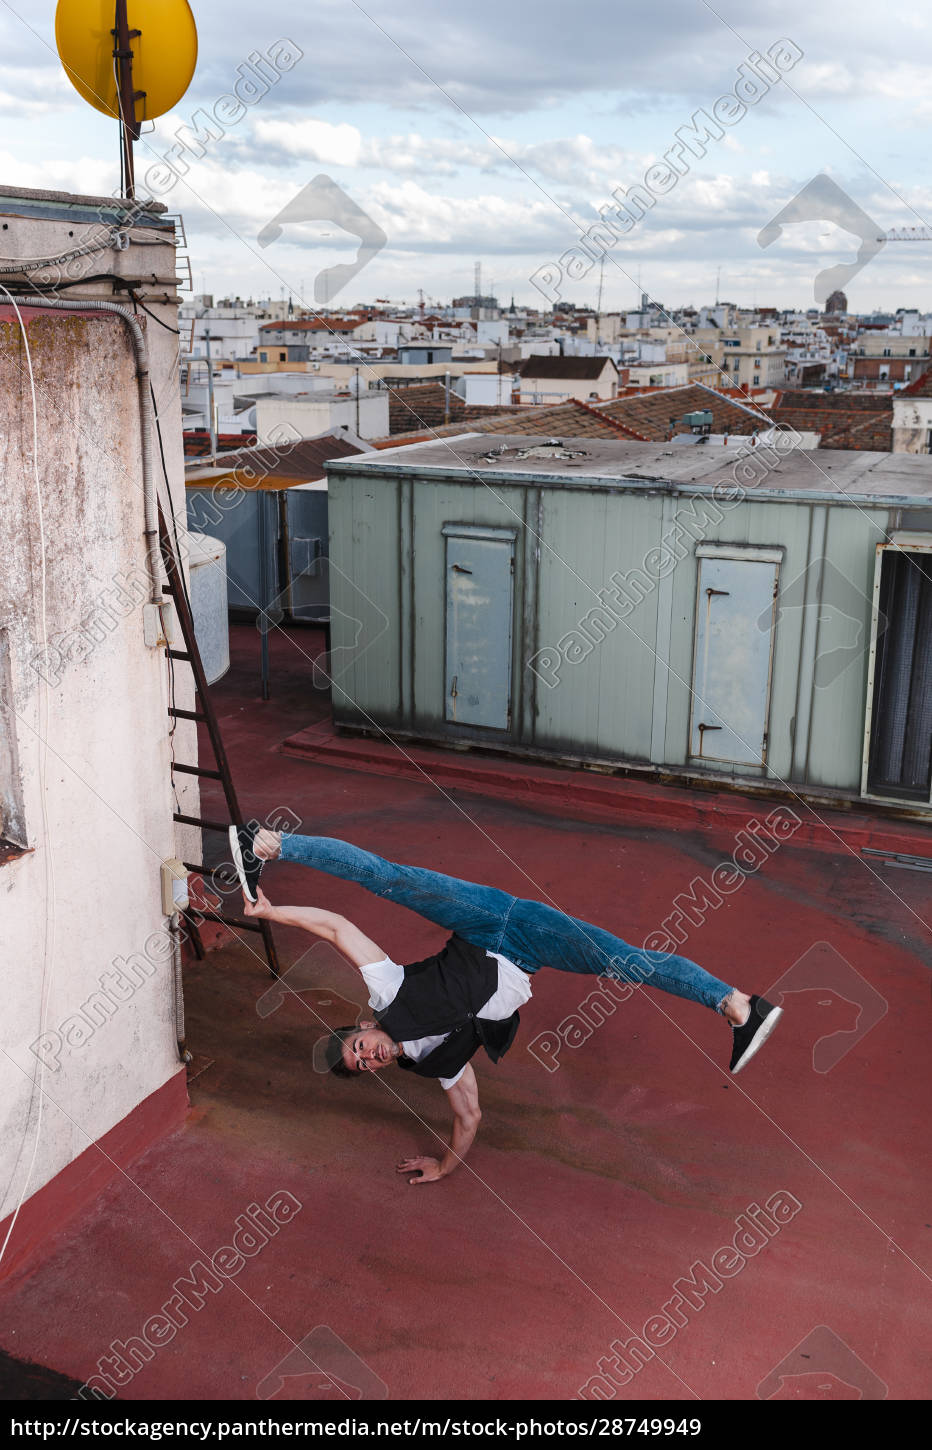 young, man, breakdancing, on, building, terrace - 28749949